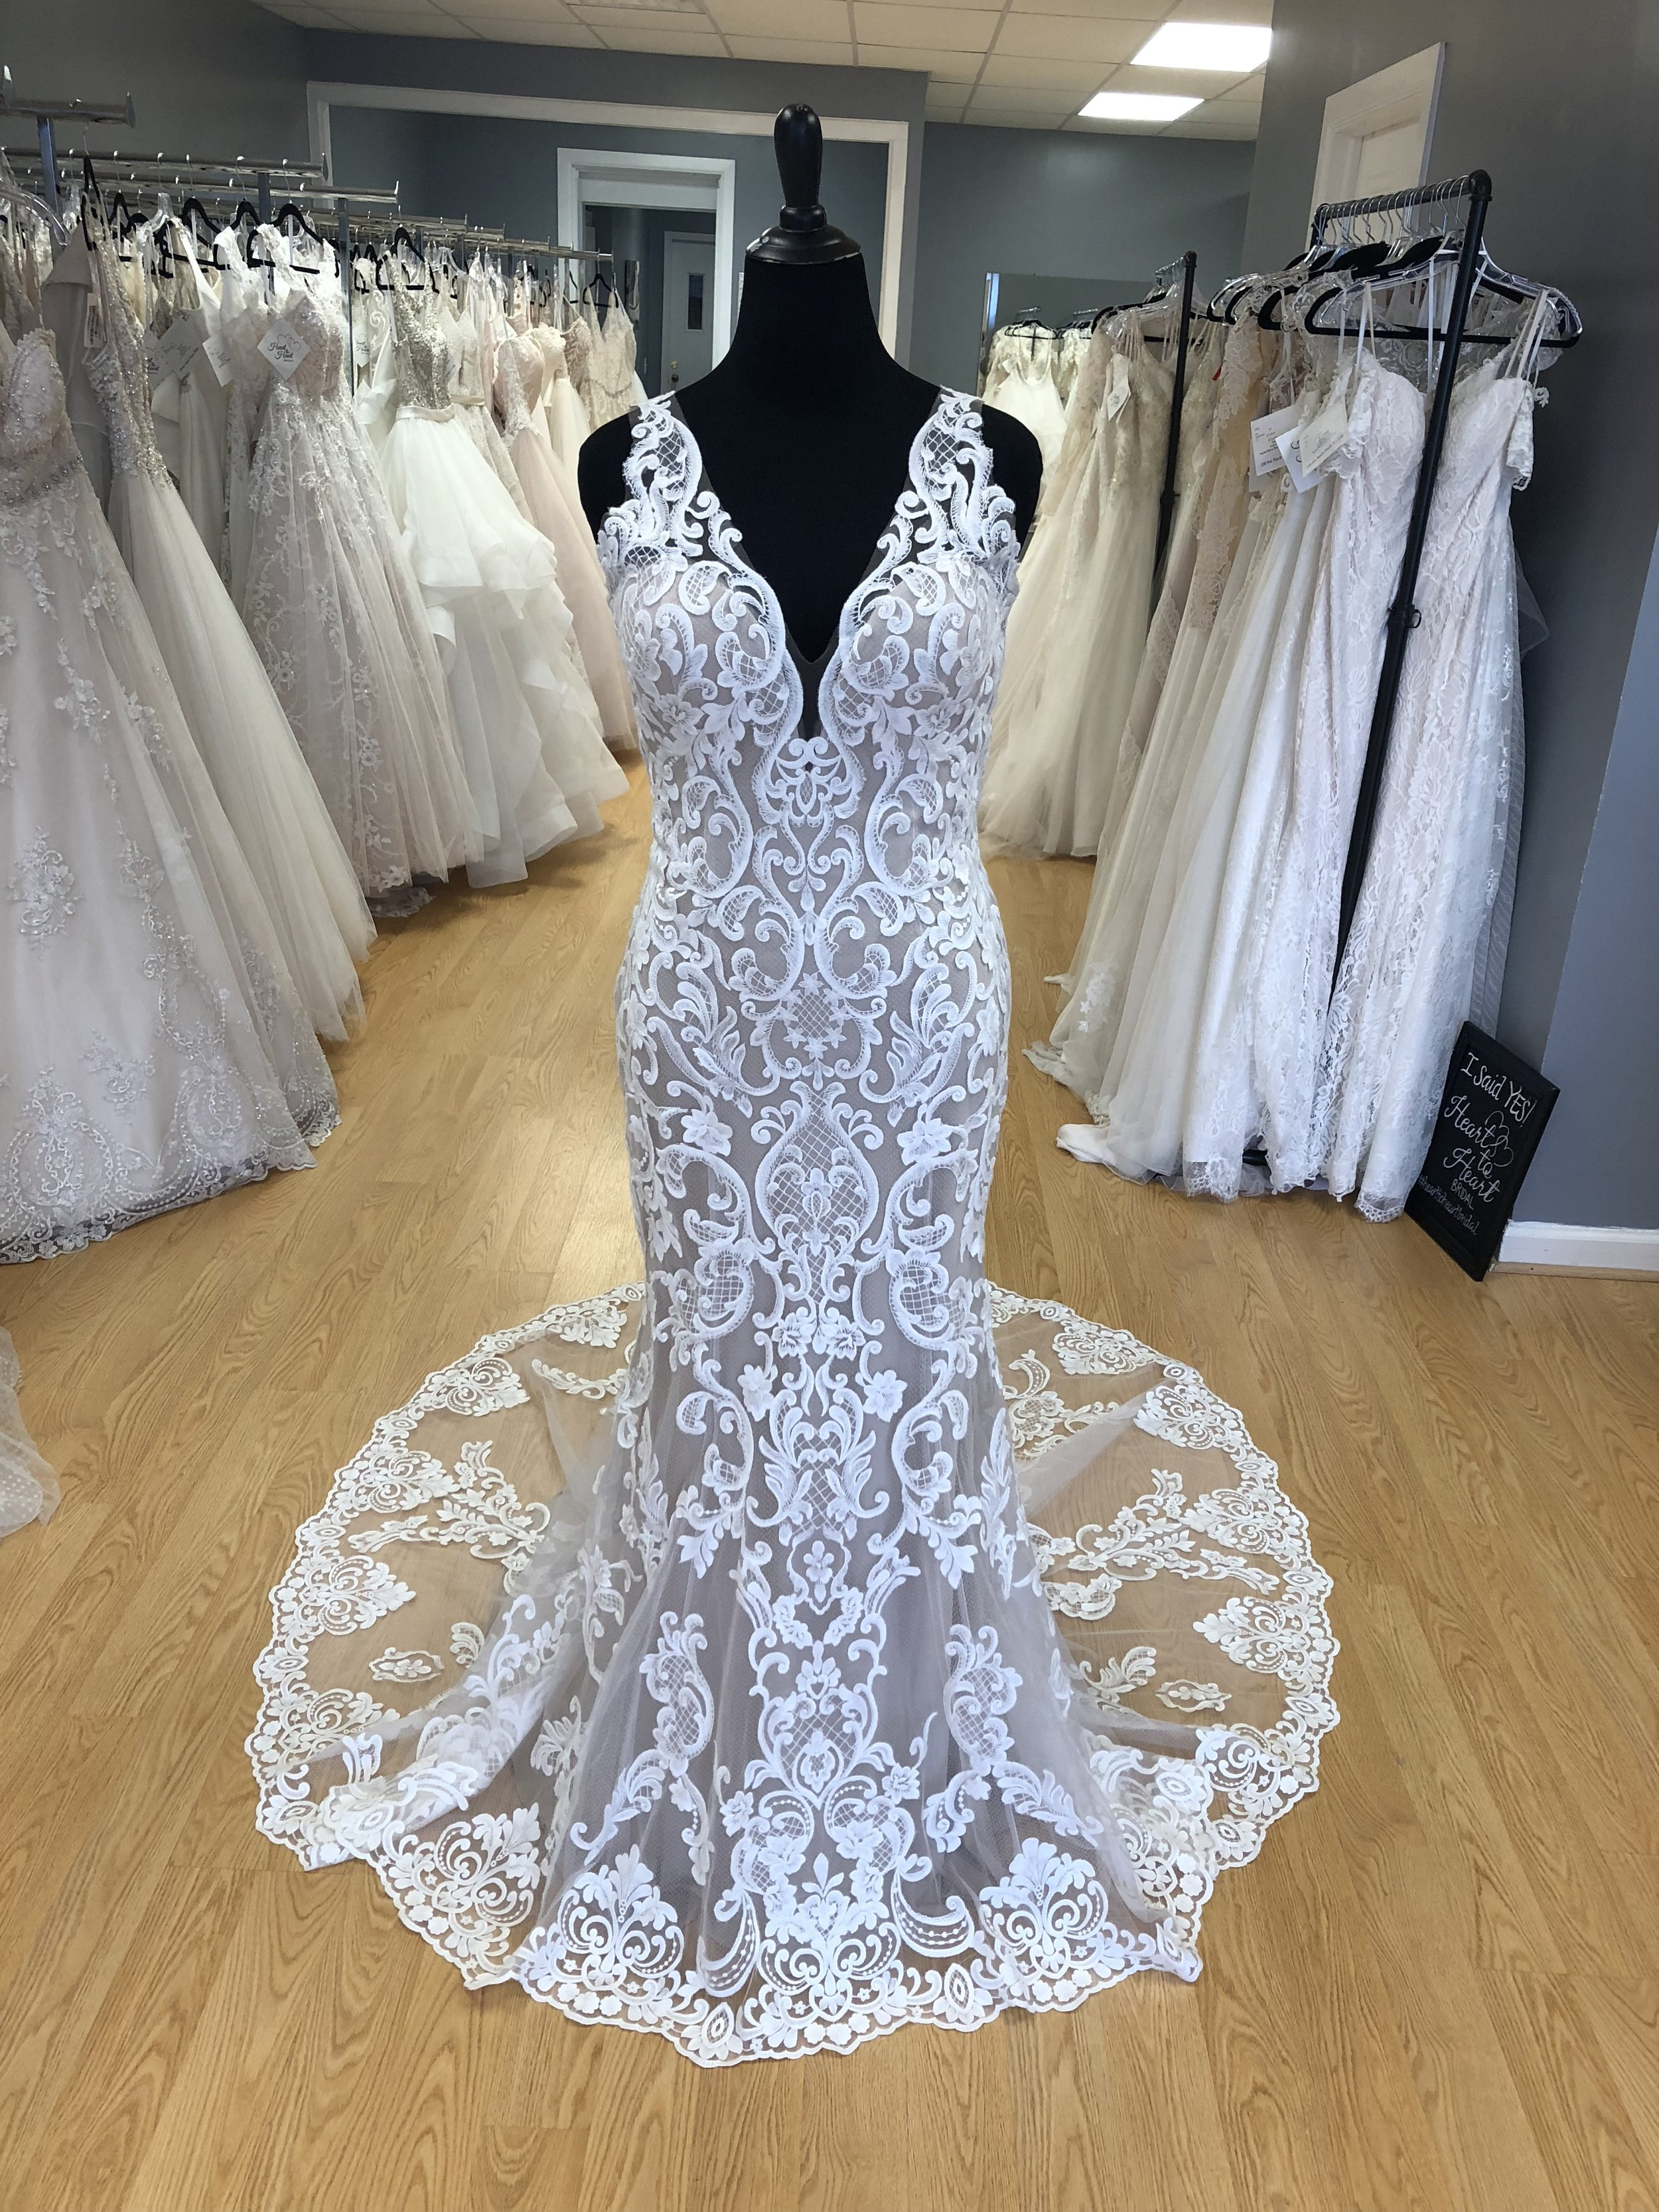 Our PRivate collection - At Heart to Heart Bridal, we have worked with our designers to curate a collection that is unique to our store. These dresses do not have a website, aren't sold online and are unique to our store so you won't be seeing them on a million other brides! If you are looking for something unique, this could be the collection for you! Our private collection dresses range in price from $898-$1,898.